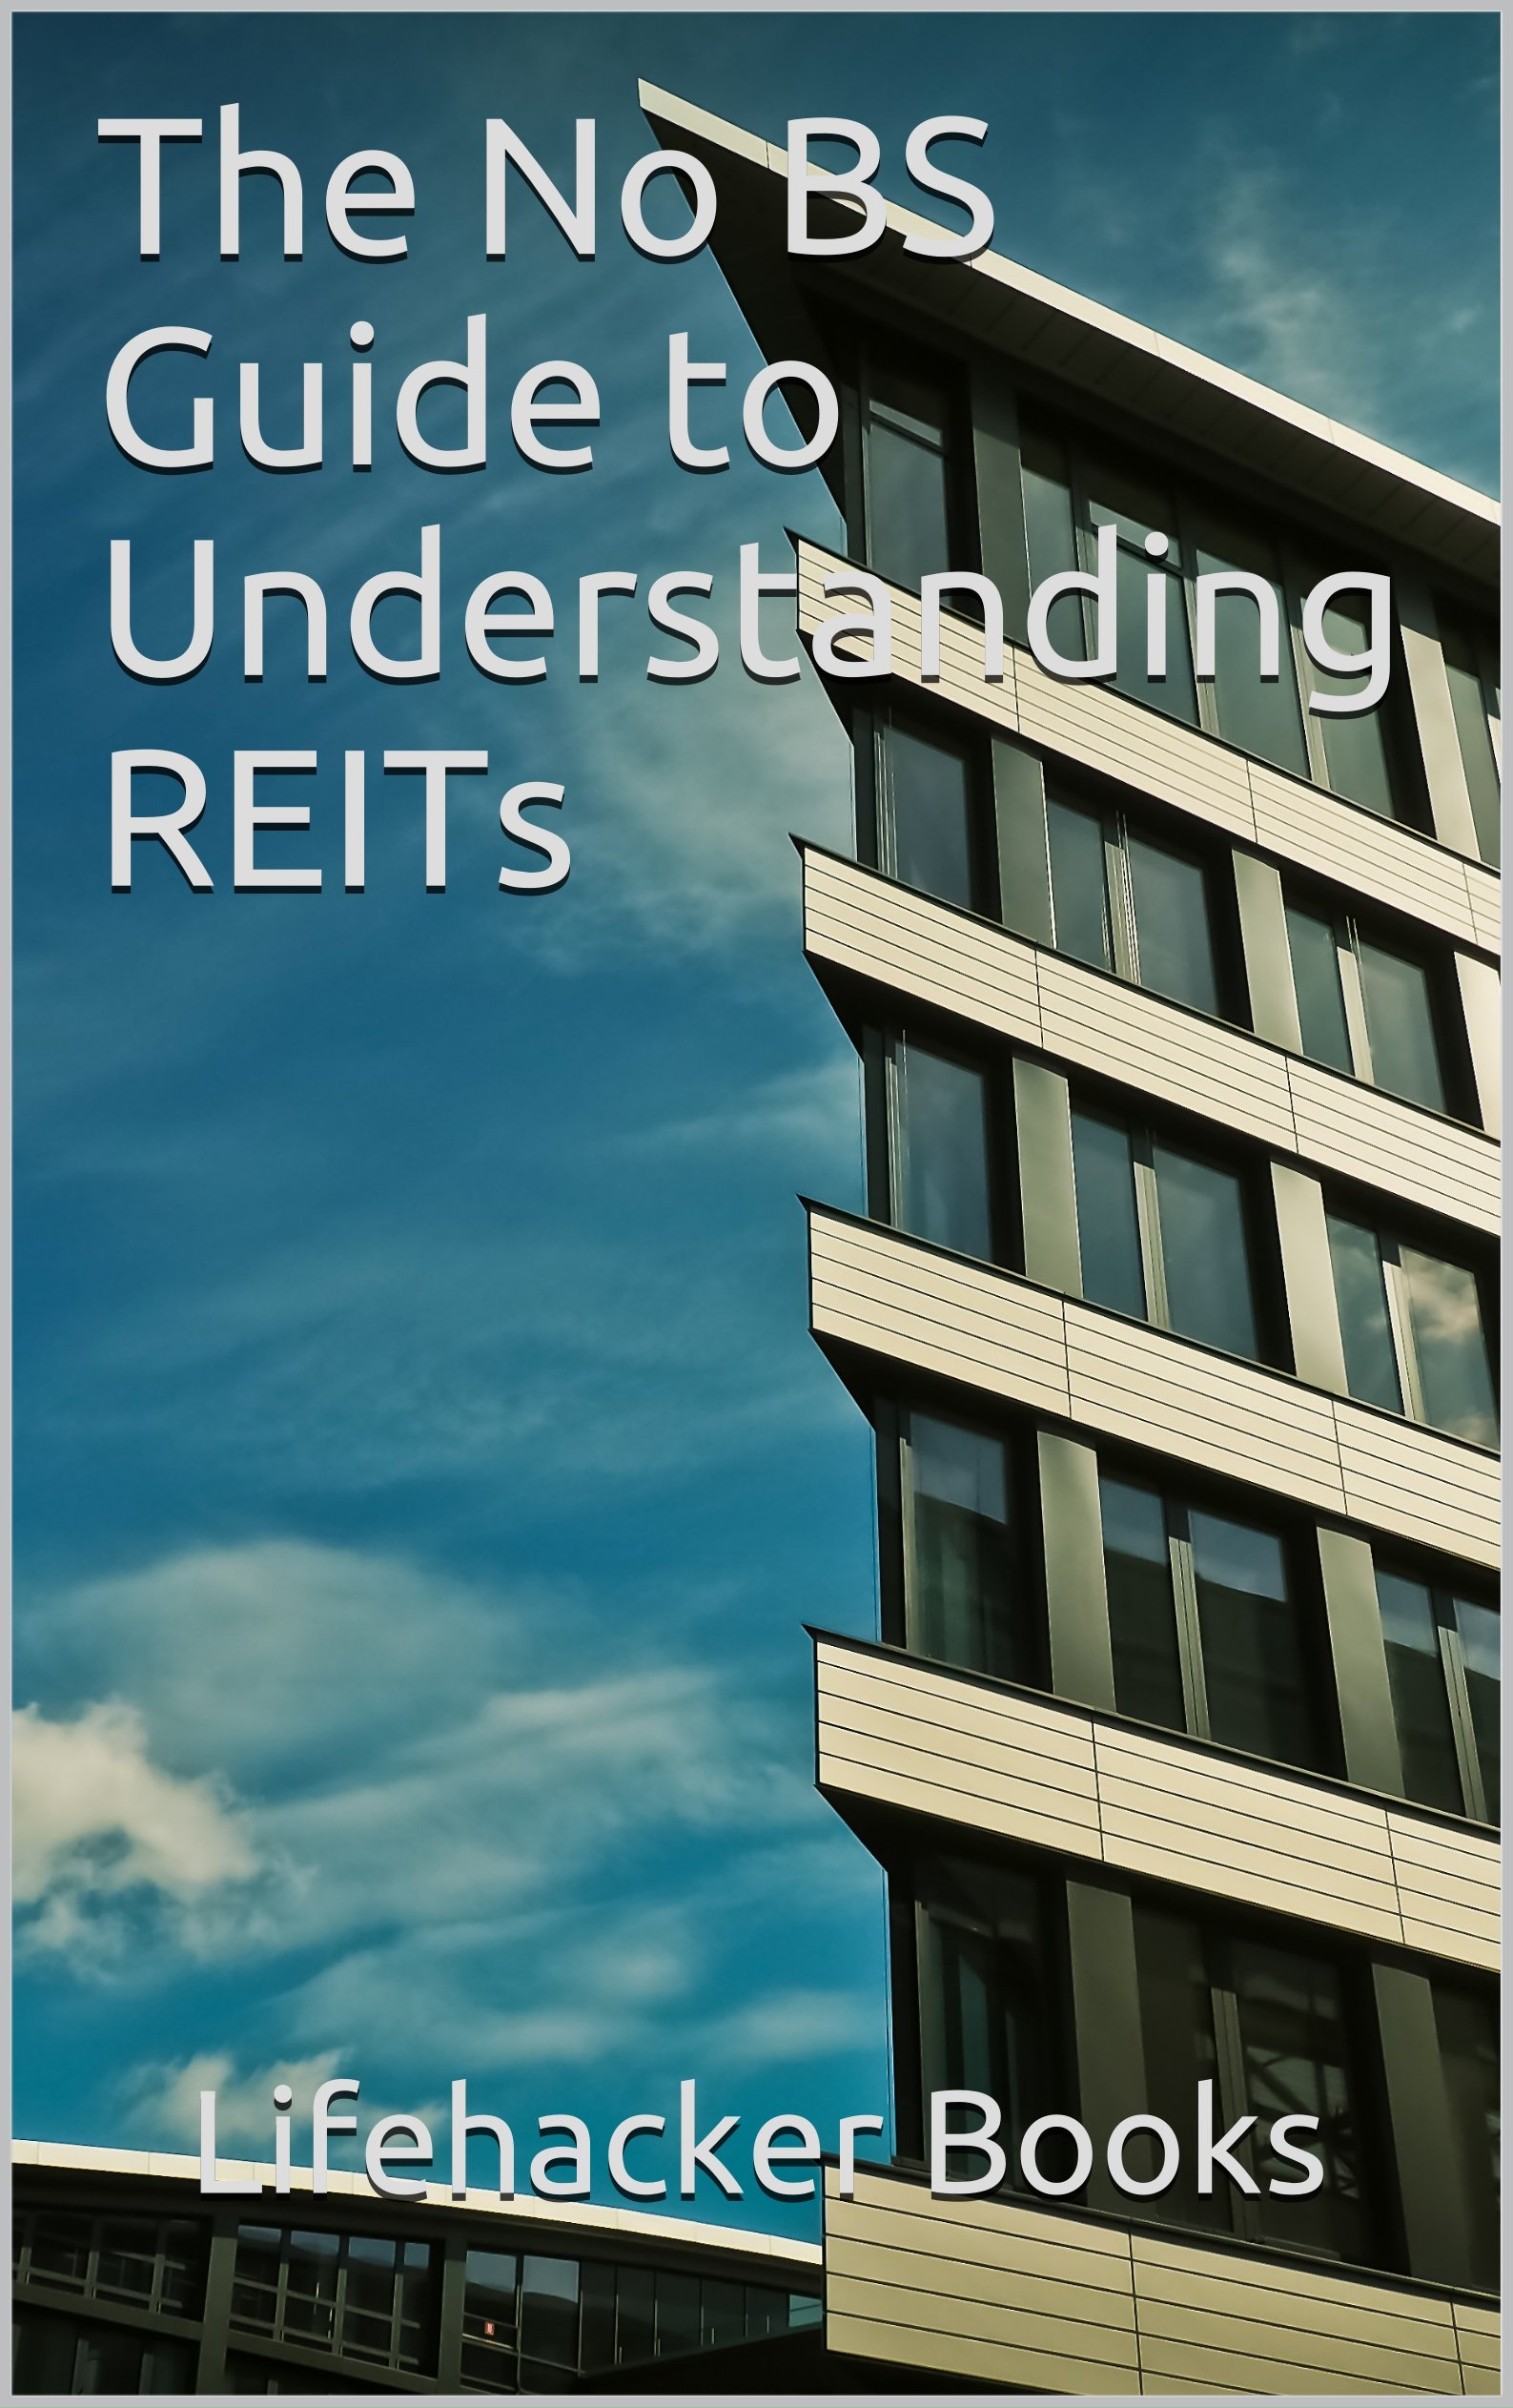 The No BS Guide to Understanding REITs